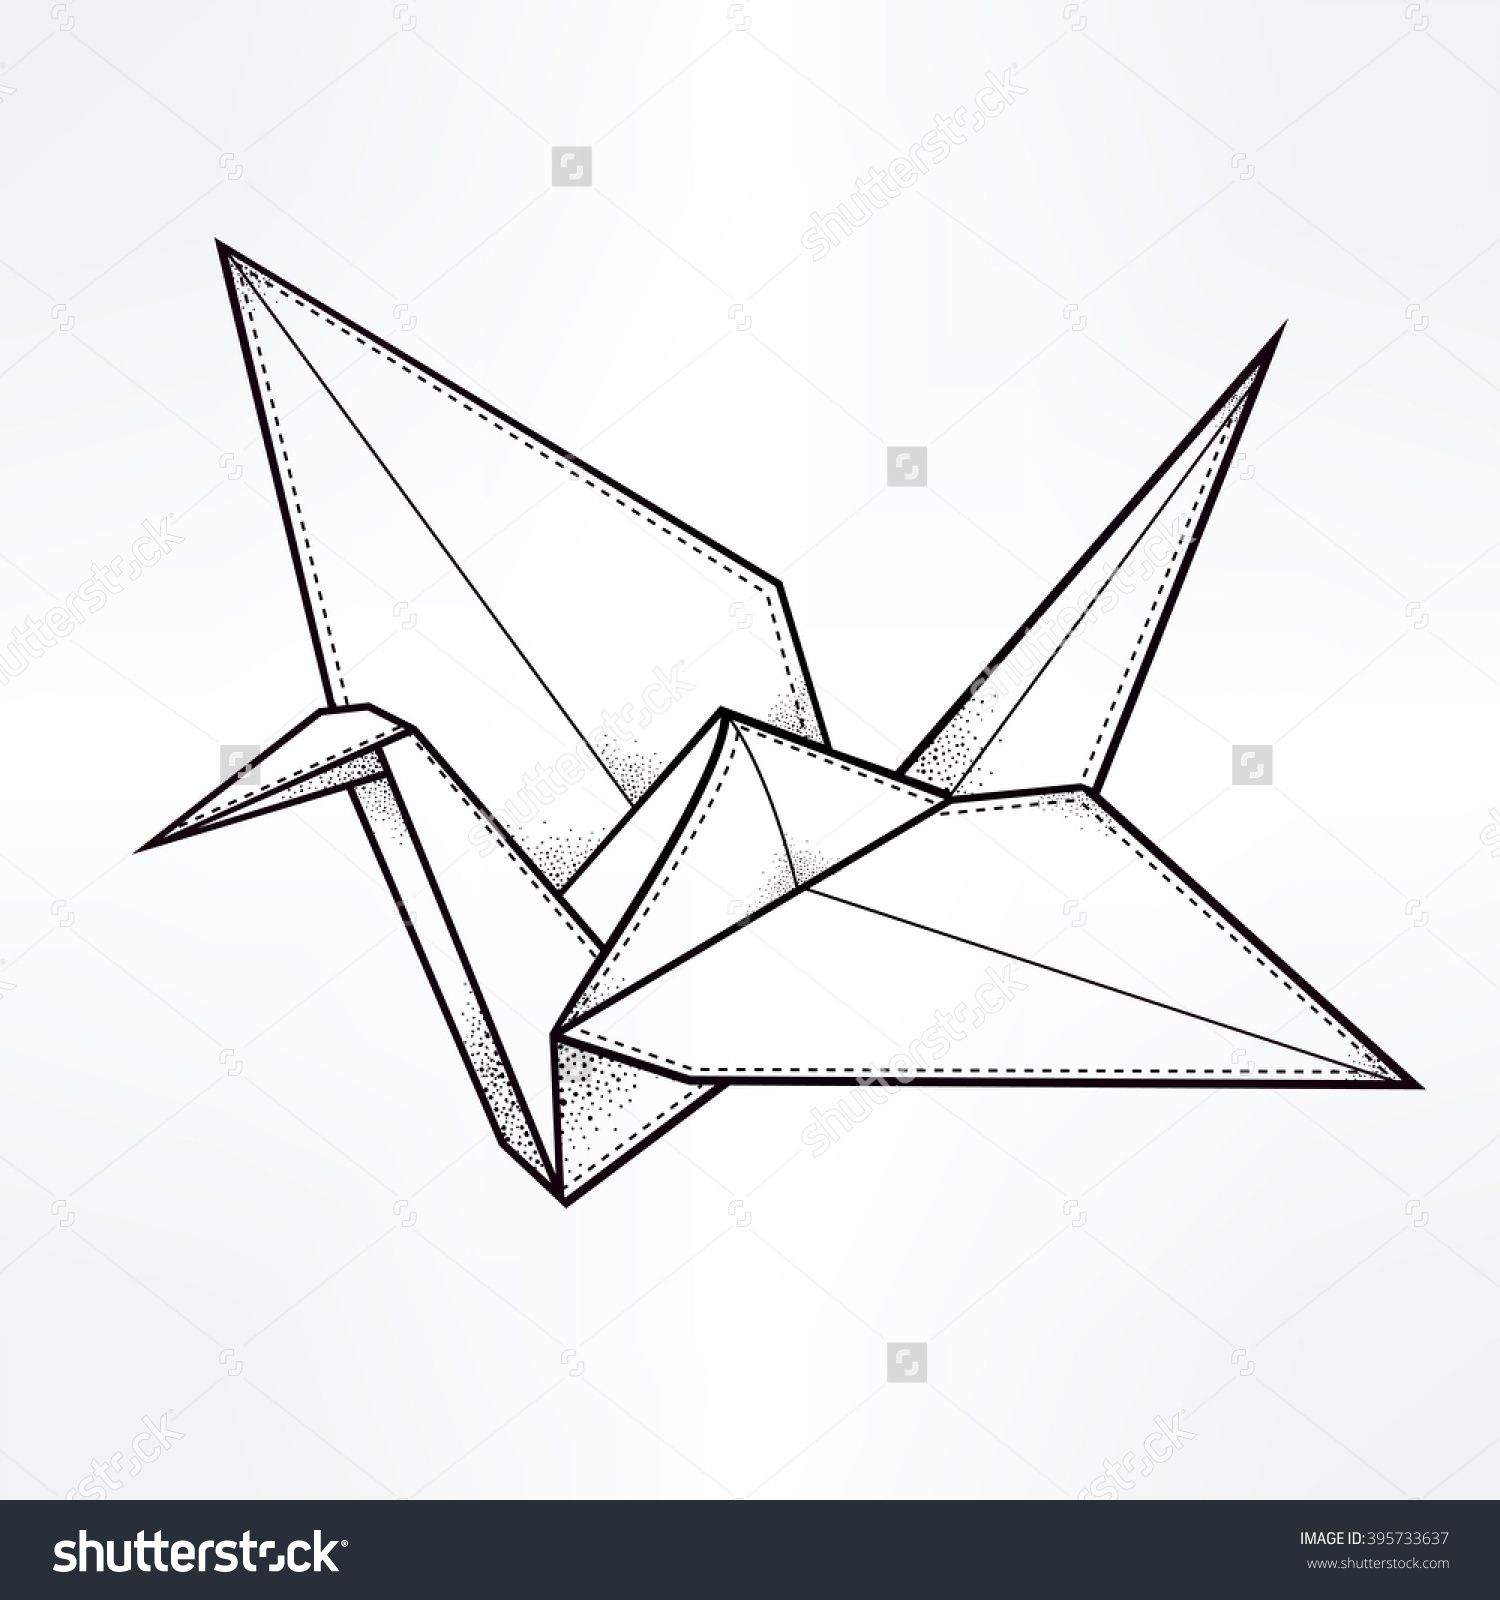 Origami Crane Google Search A Murder Of Crows Pinterest